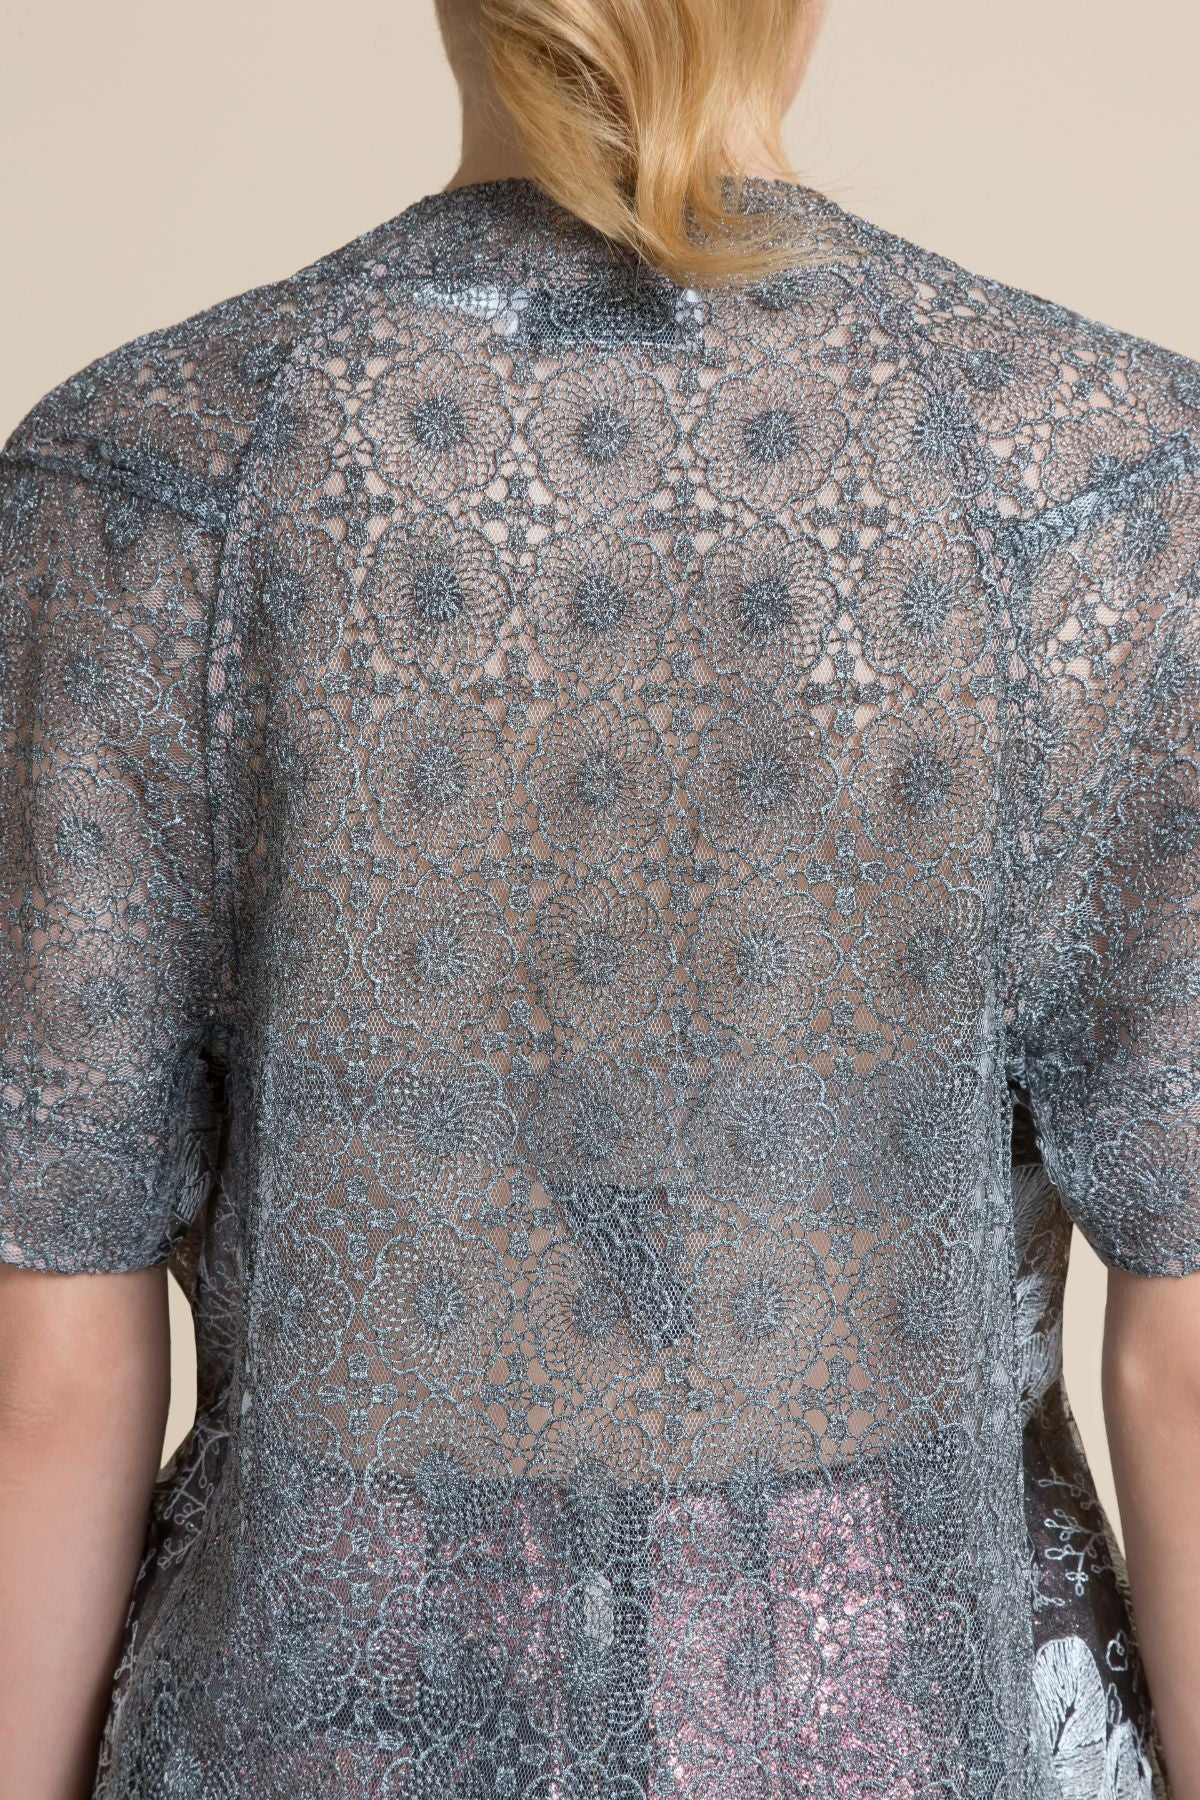 Pewter Lindy Hop Lace Tee